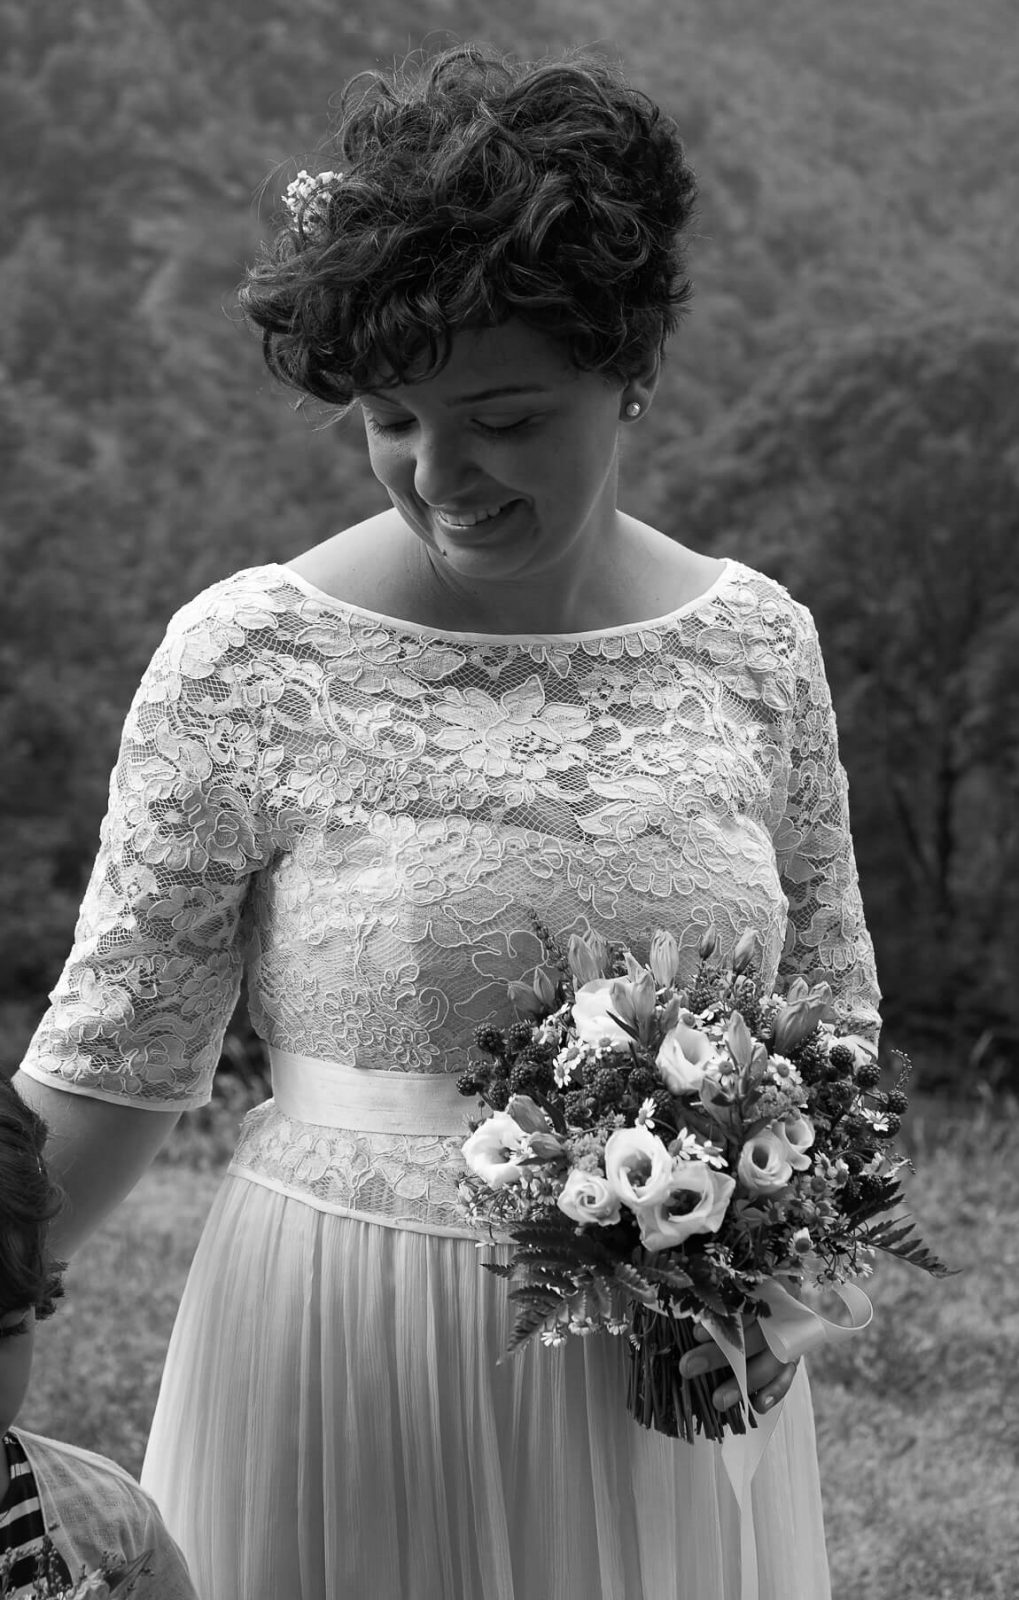 Lucia's Mountain wedding ~ A real bride wearing Larimeloom